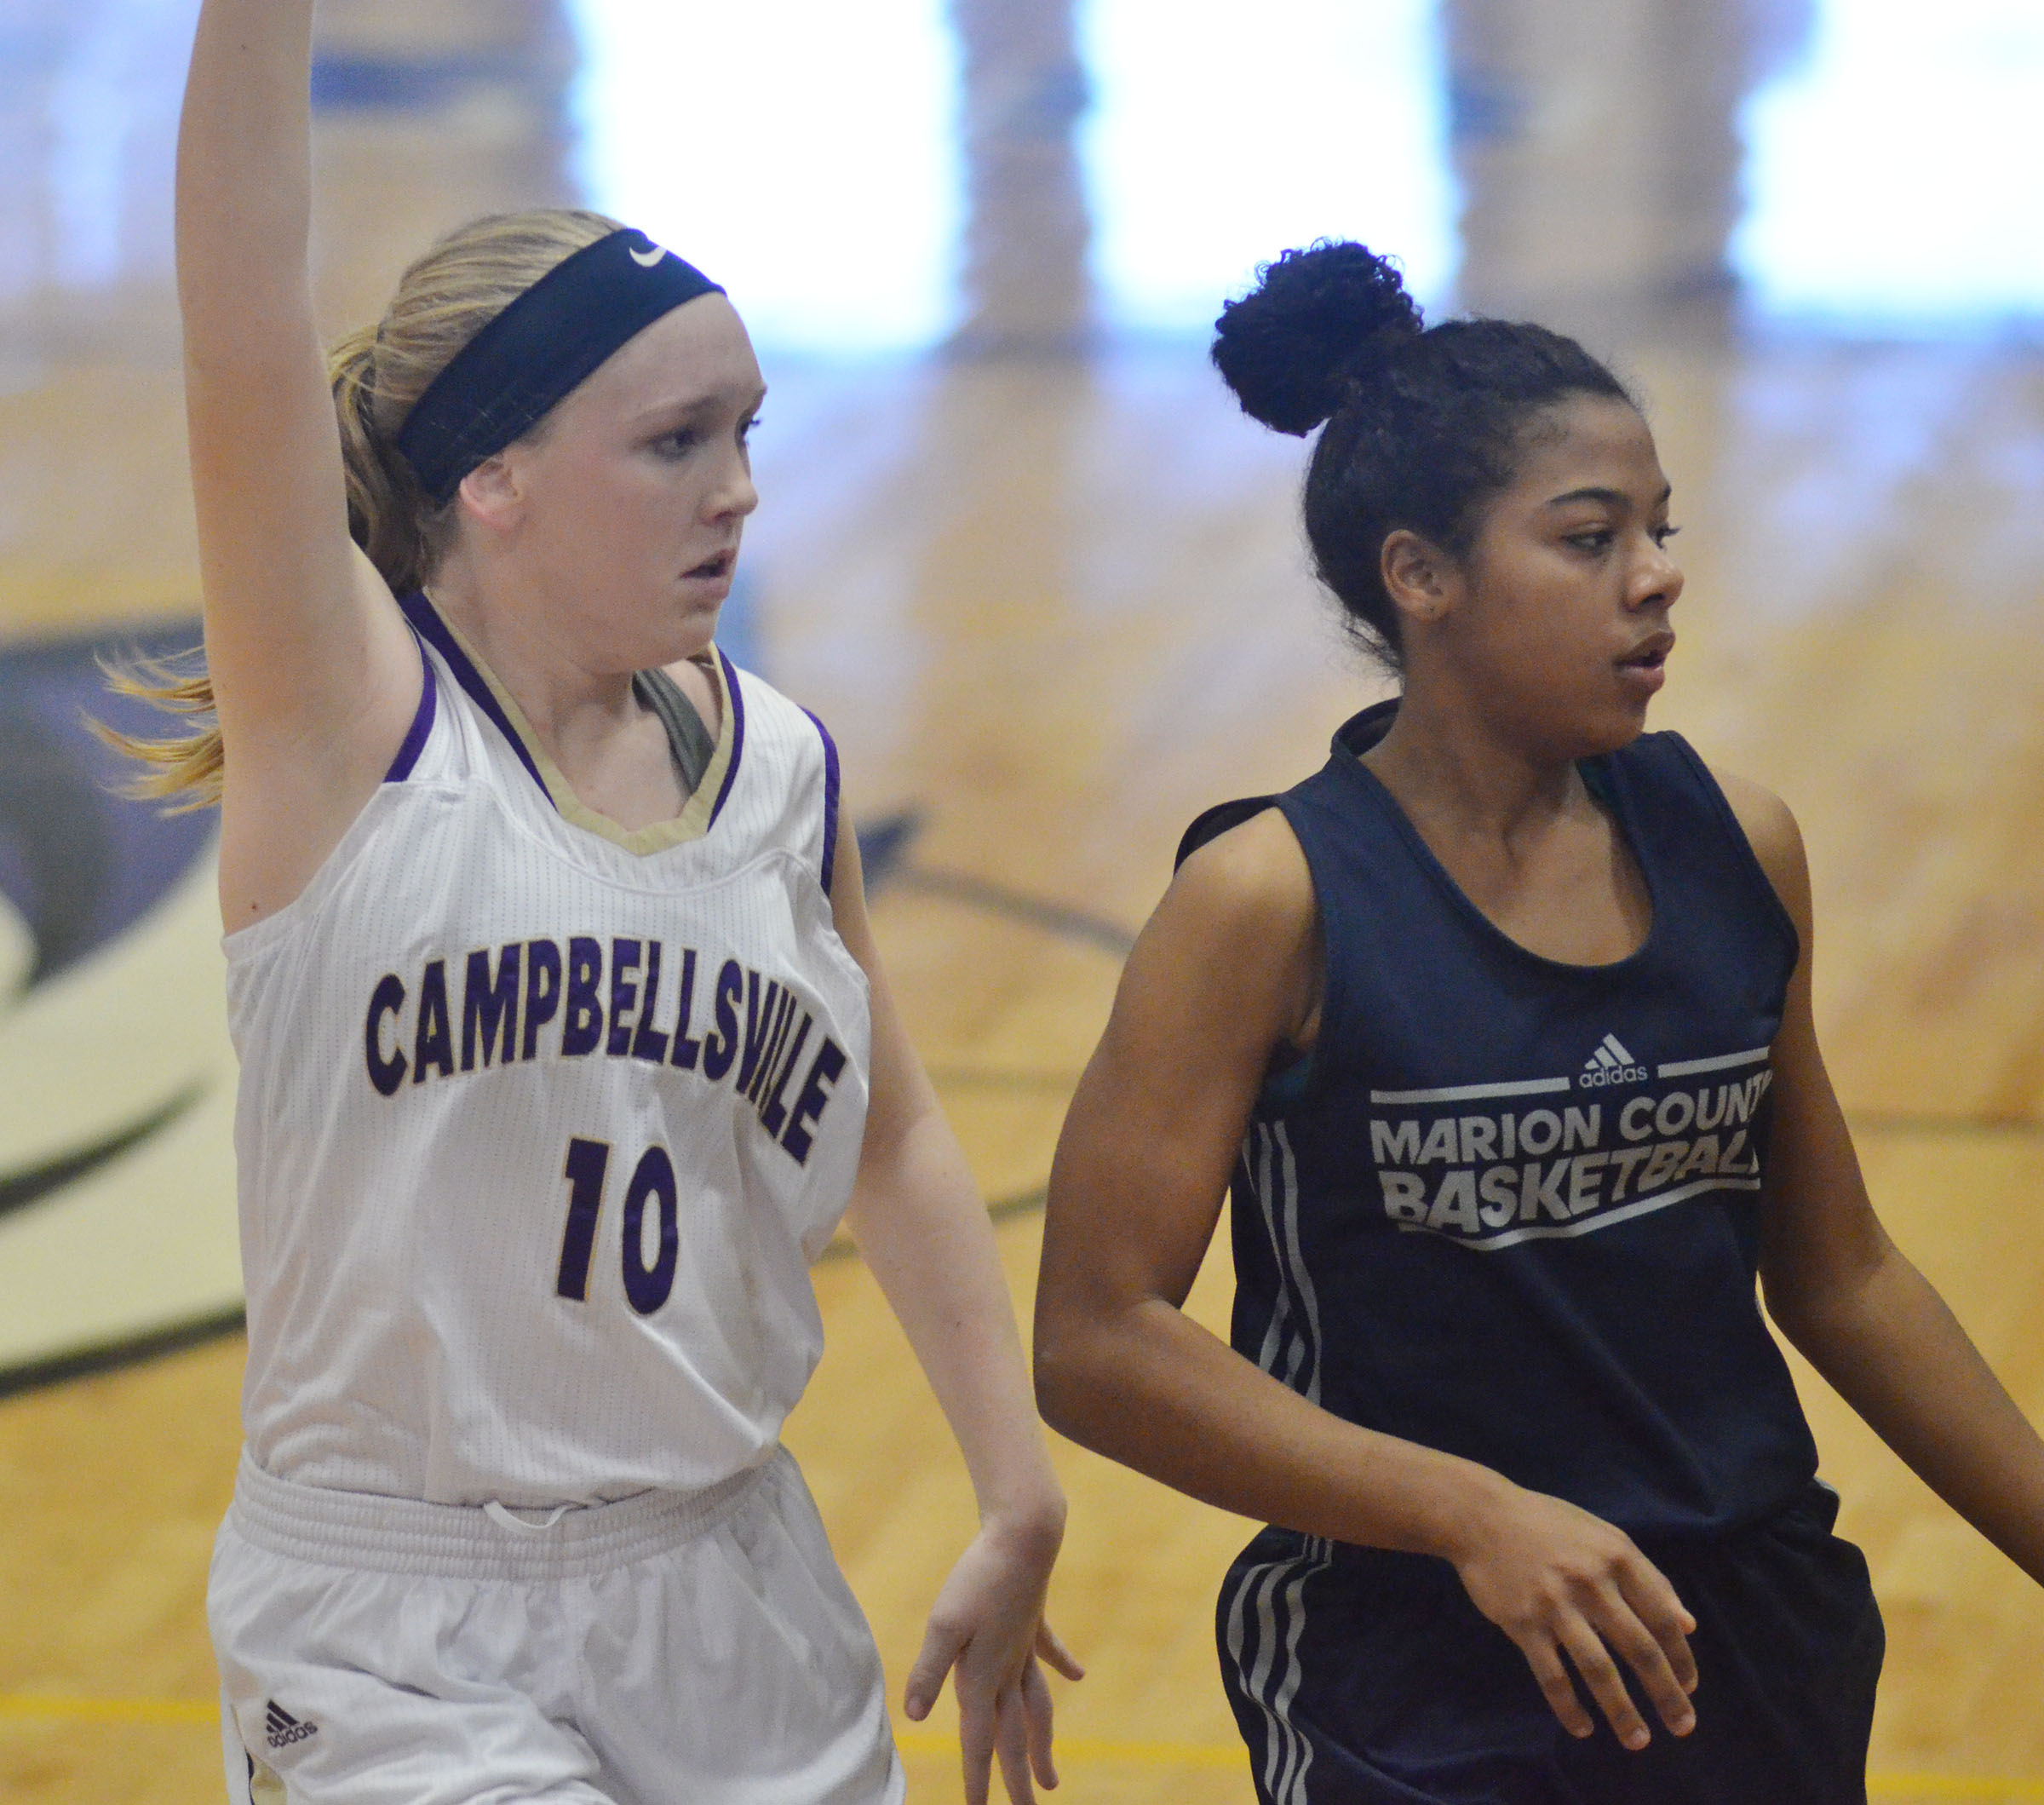 Campbellsville Middle School eighth-grader Catlyn Clausen calls for the ball.